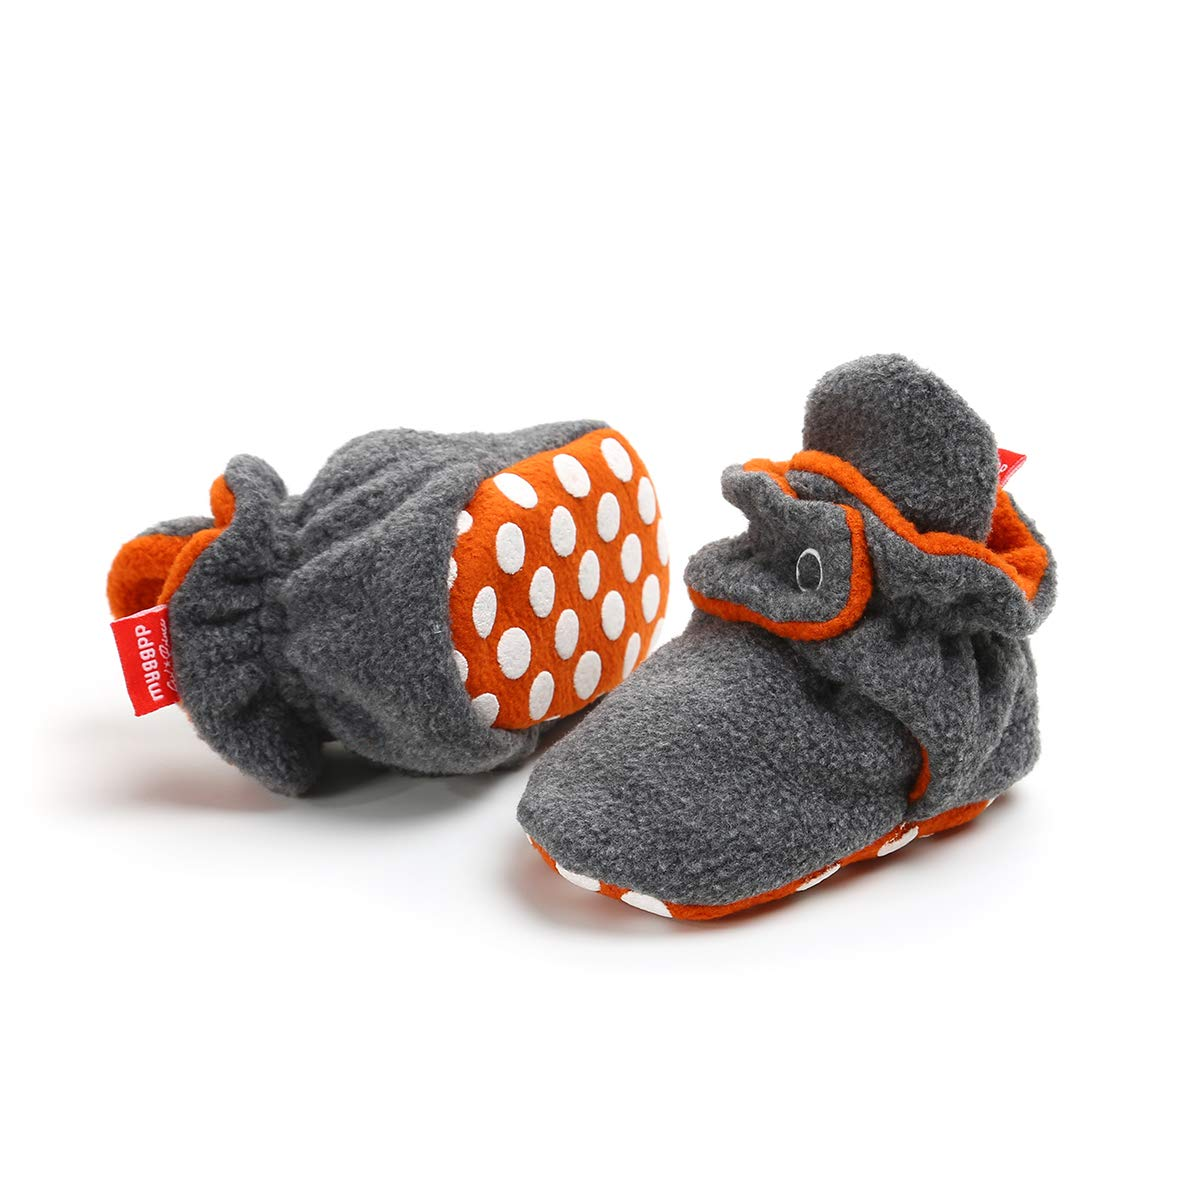 QGAKAGO Baby Girls Boys Fleece Booties Cotton Lining and Soft Sole Shoes